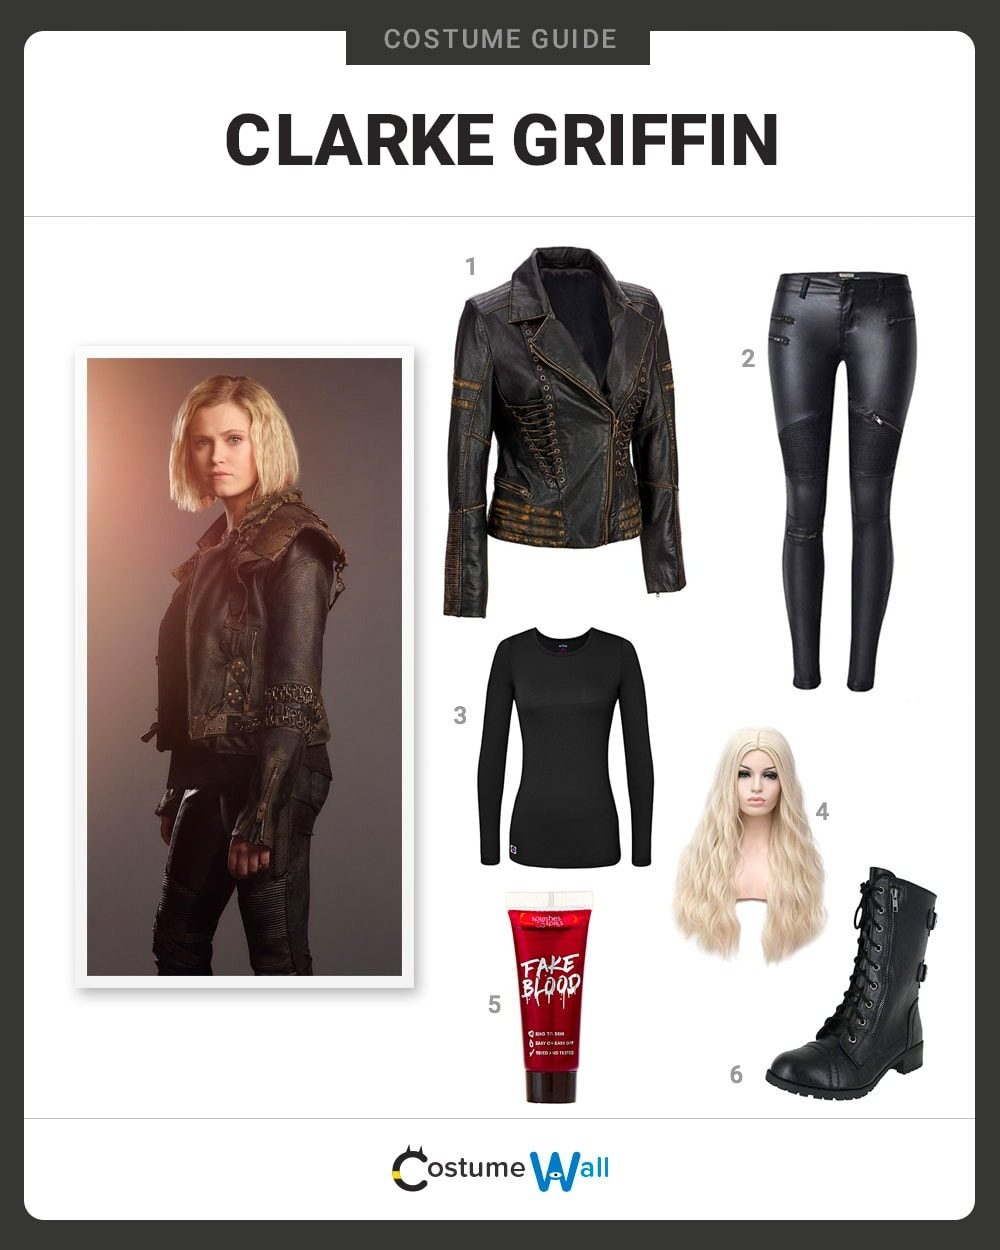 Clarke Griffin Costume Guide